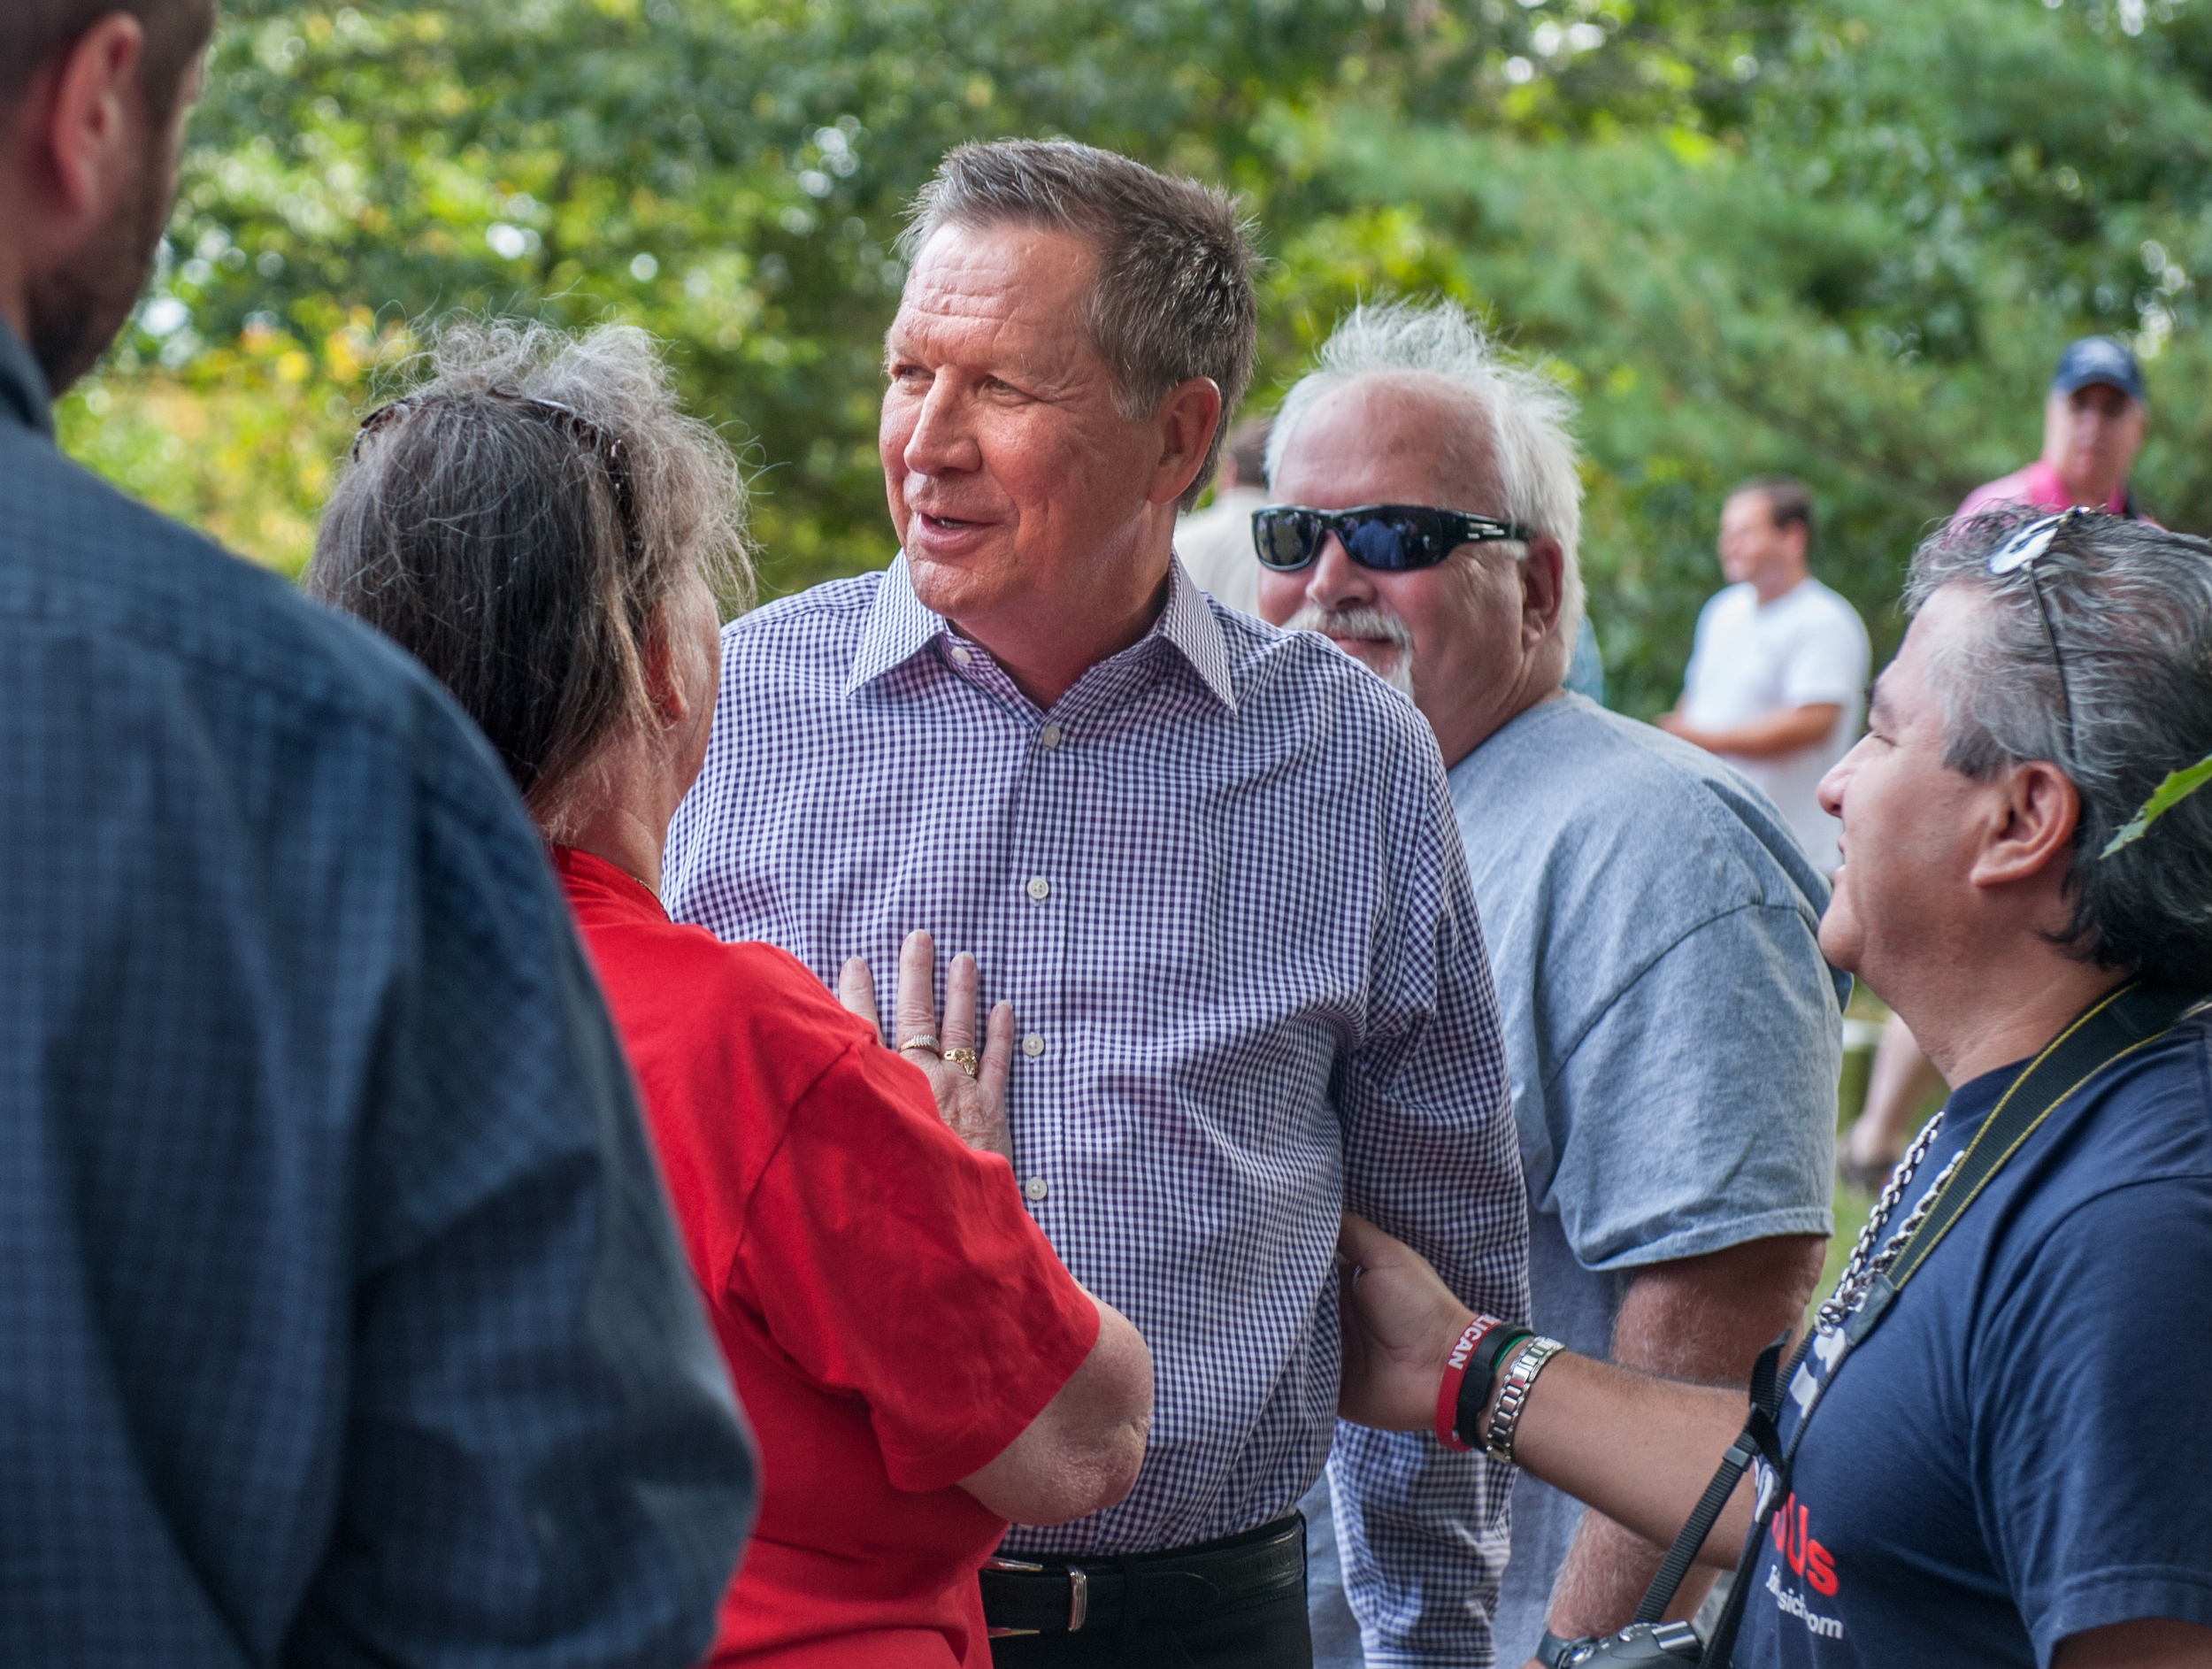 Visitors to the Stafford County GOP BBQ and Beer bash get up close with Ohio Governor John Kasich in Dover, New Hampshire Saturday. Kasich has shown steady poll numbers of around 9 percent in the GOP primary race the Granite State.